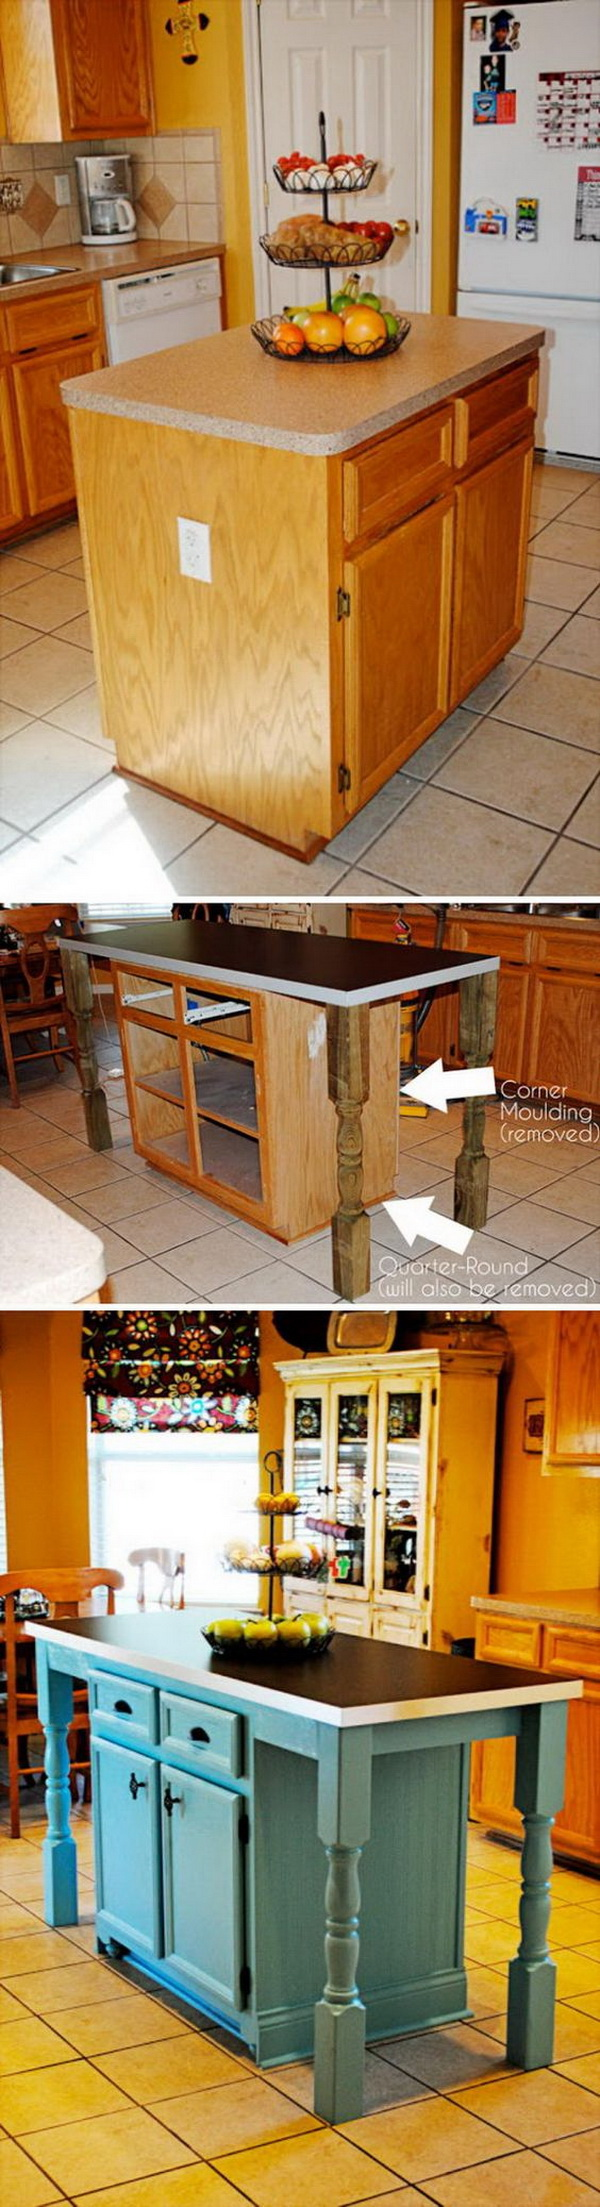 Makeover furniture ideas Bedroom Furniture Clever Kitchen Island Makeover Style Motivation Awesome Diy Furniture Makeover Ideas Genius Ways To Repurpose Old